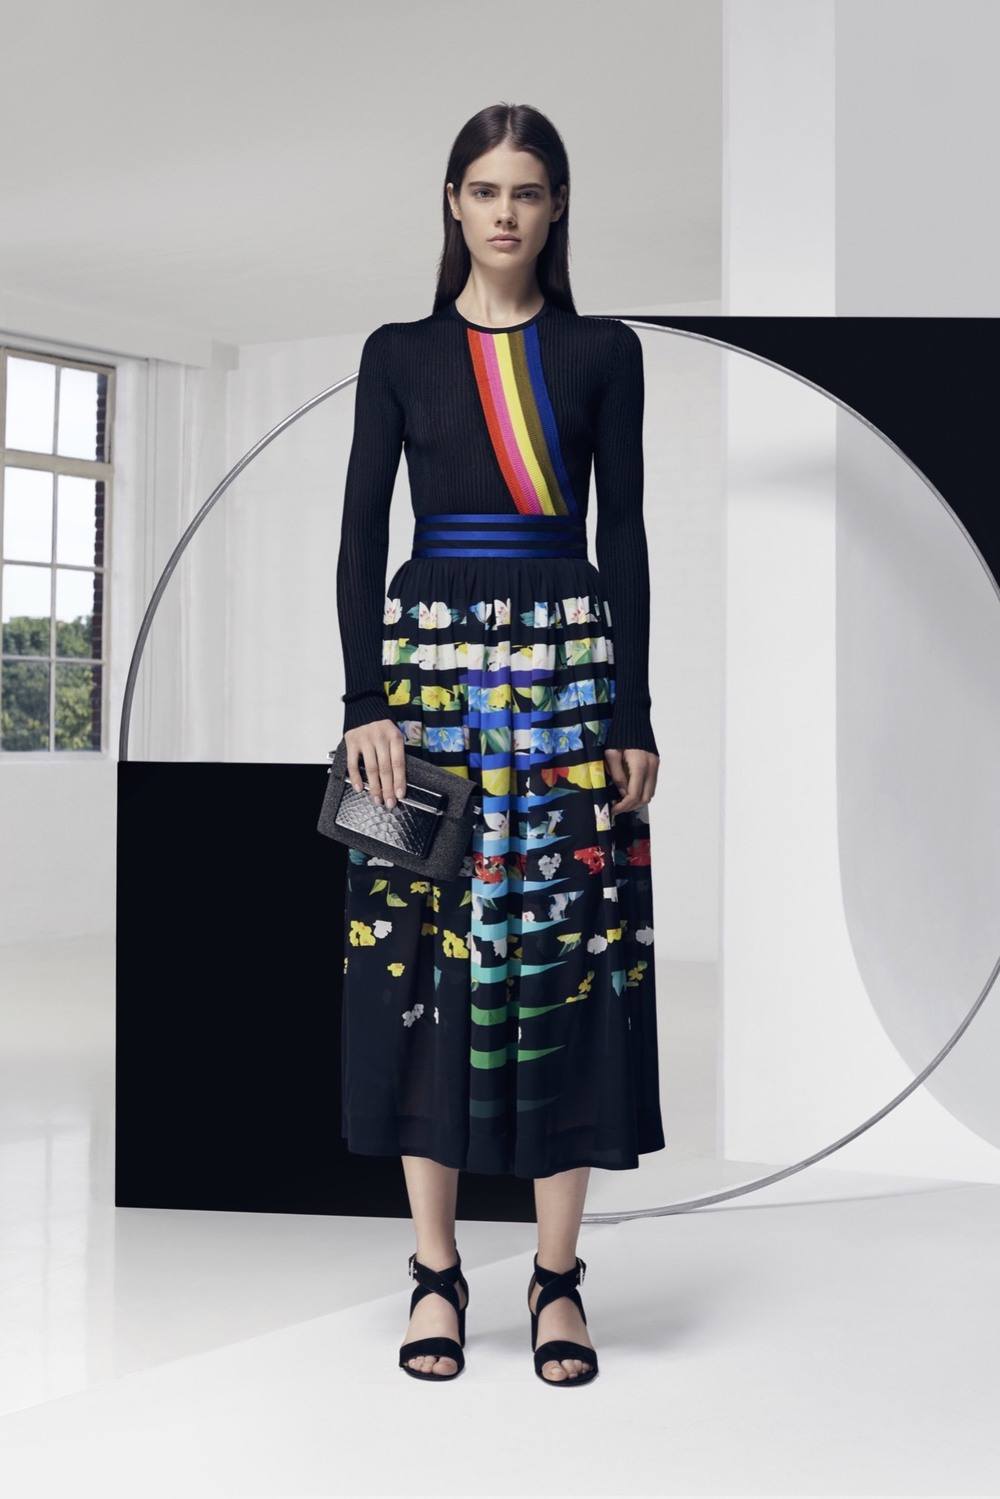 mary-katrantzou-026-1366.jpeg